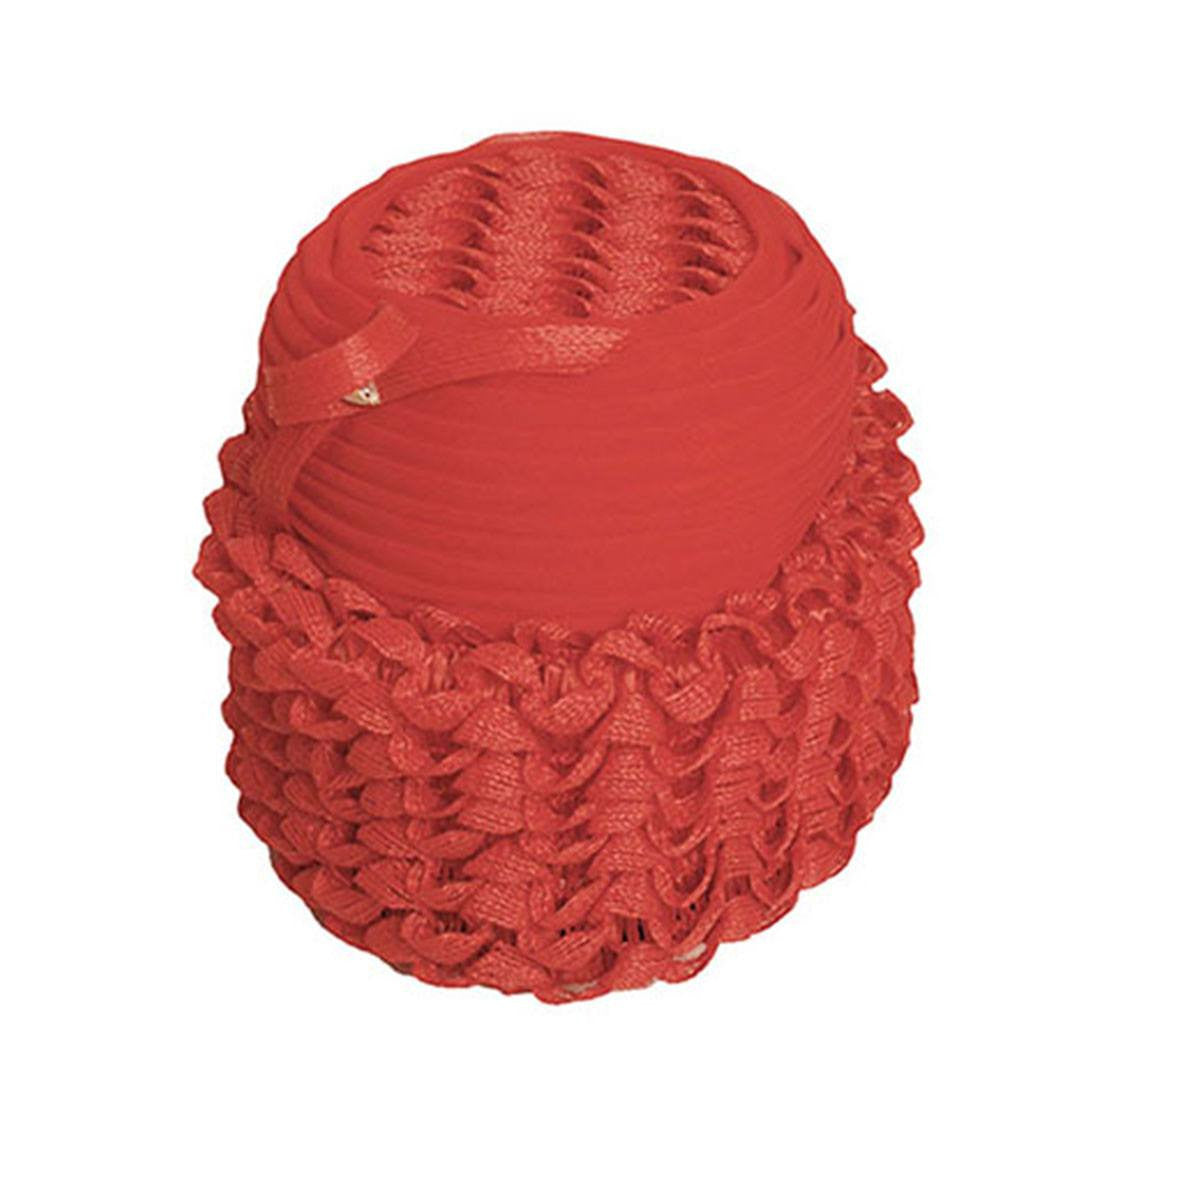 1960s Red Ruffled Flower Pot 2 Hat by Linda Farrell, Size 21.5